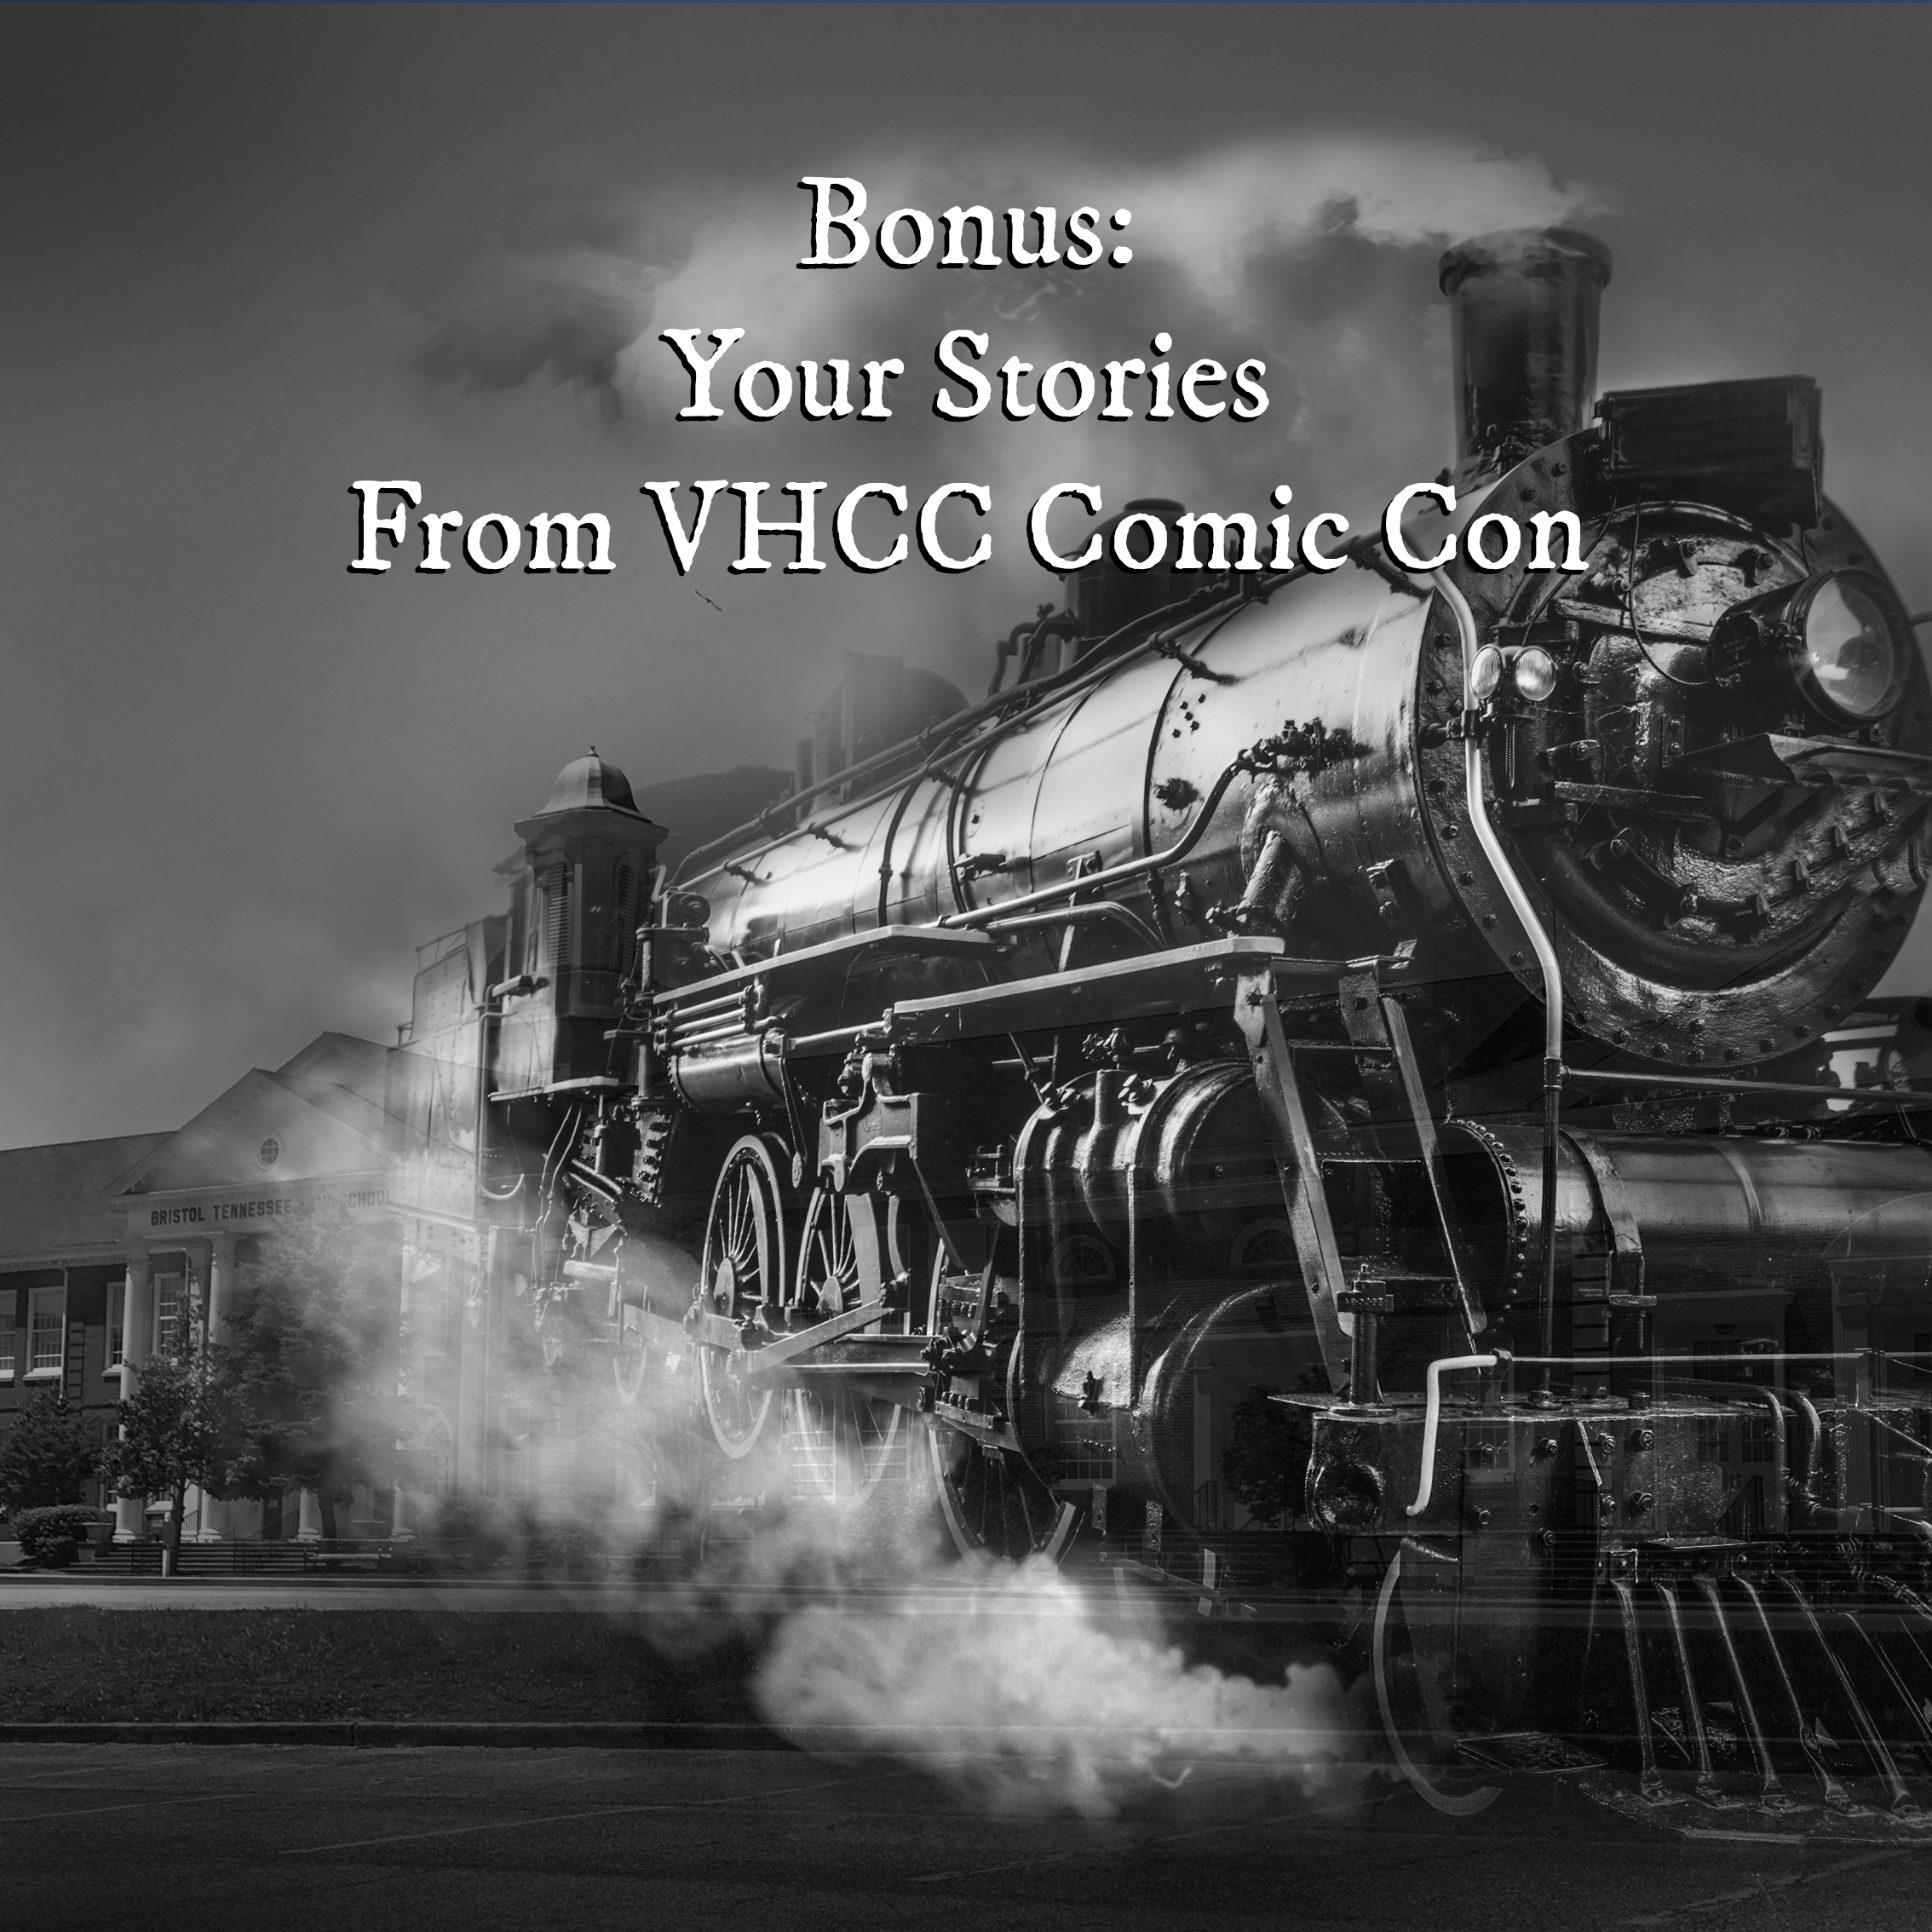 Bonus: Your Stories from VHCC Comic Con